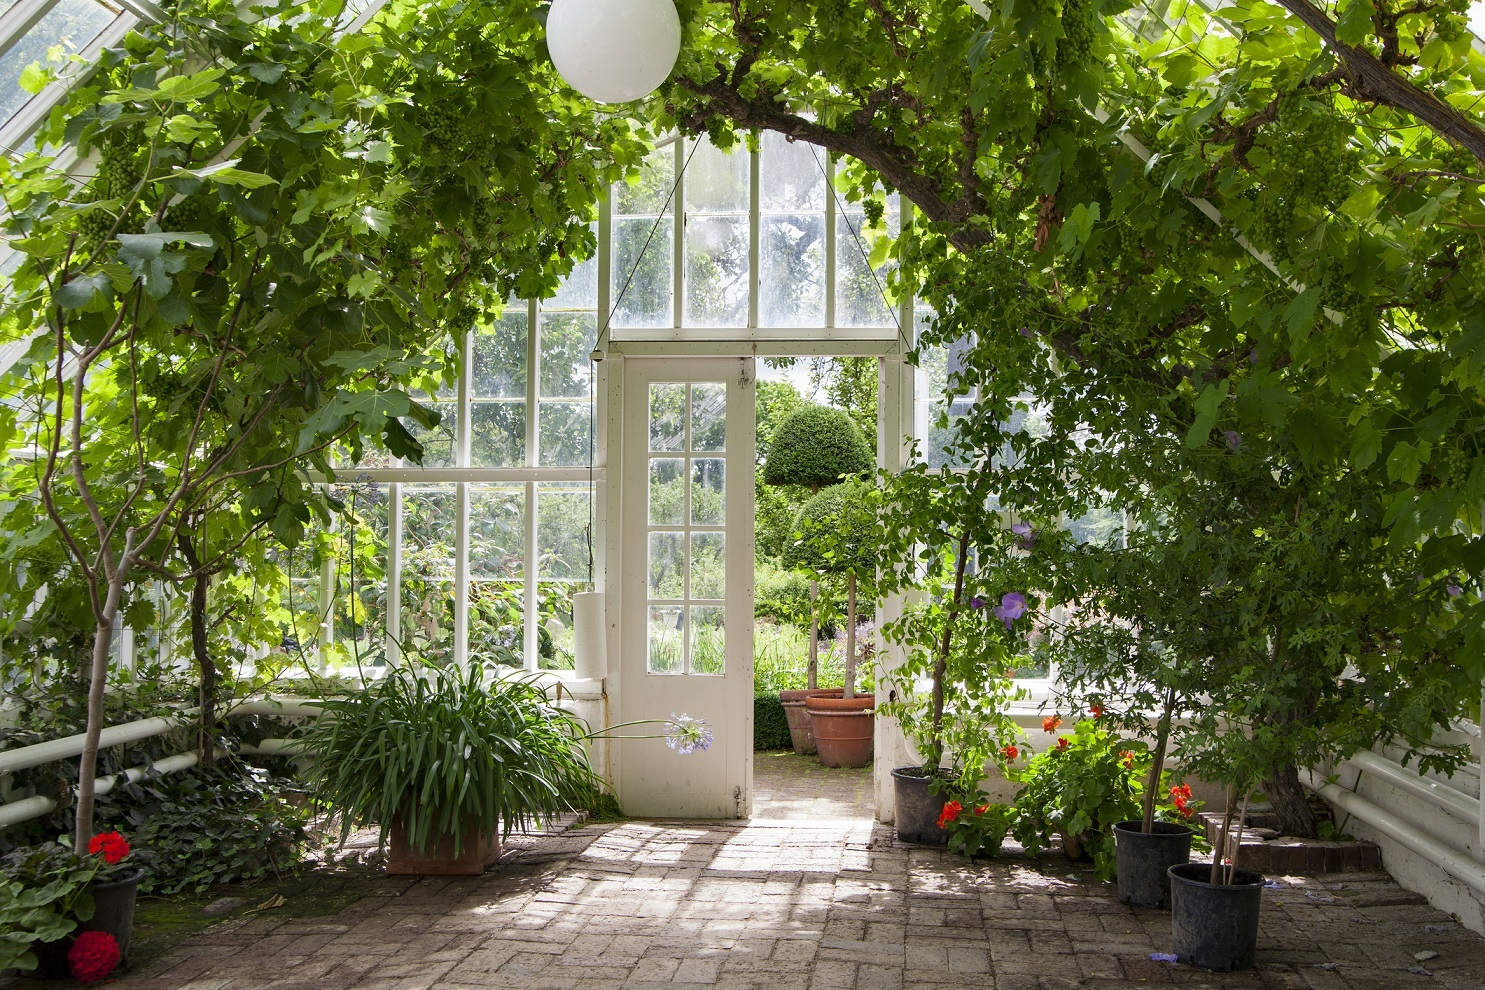 Want A Backyard Greenhouse Like Joanna Gaines? Hereu0027s How To Get The Look